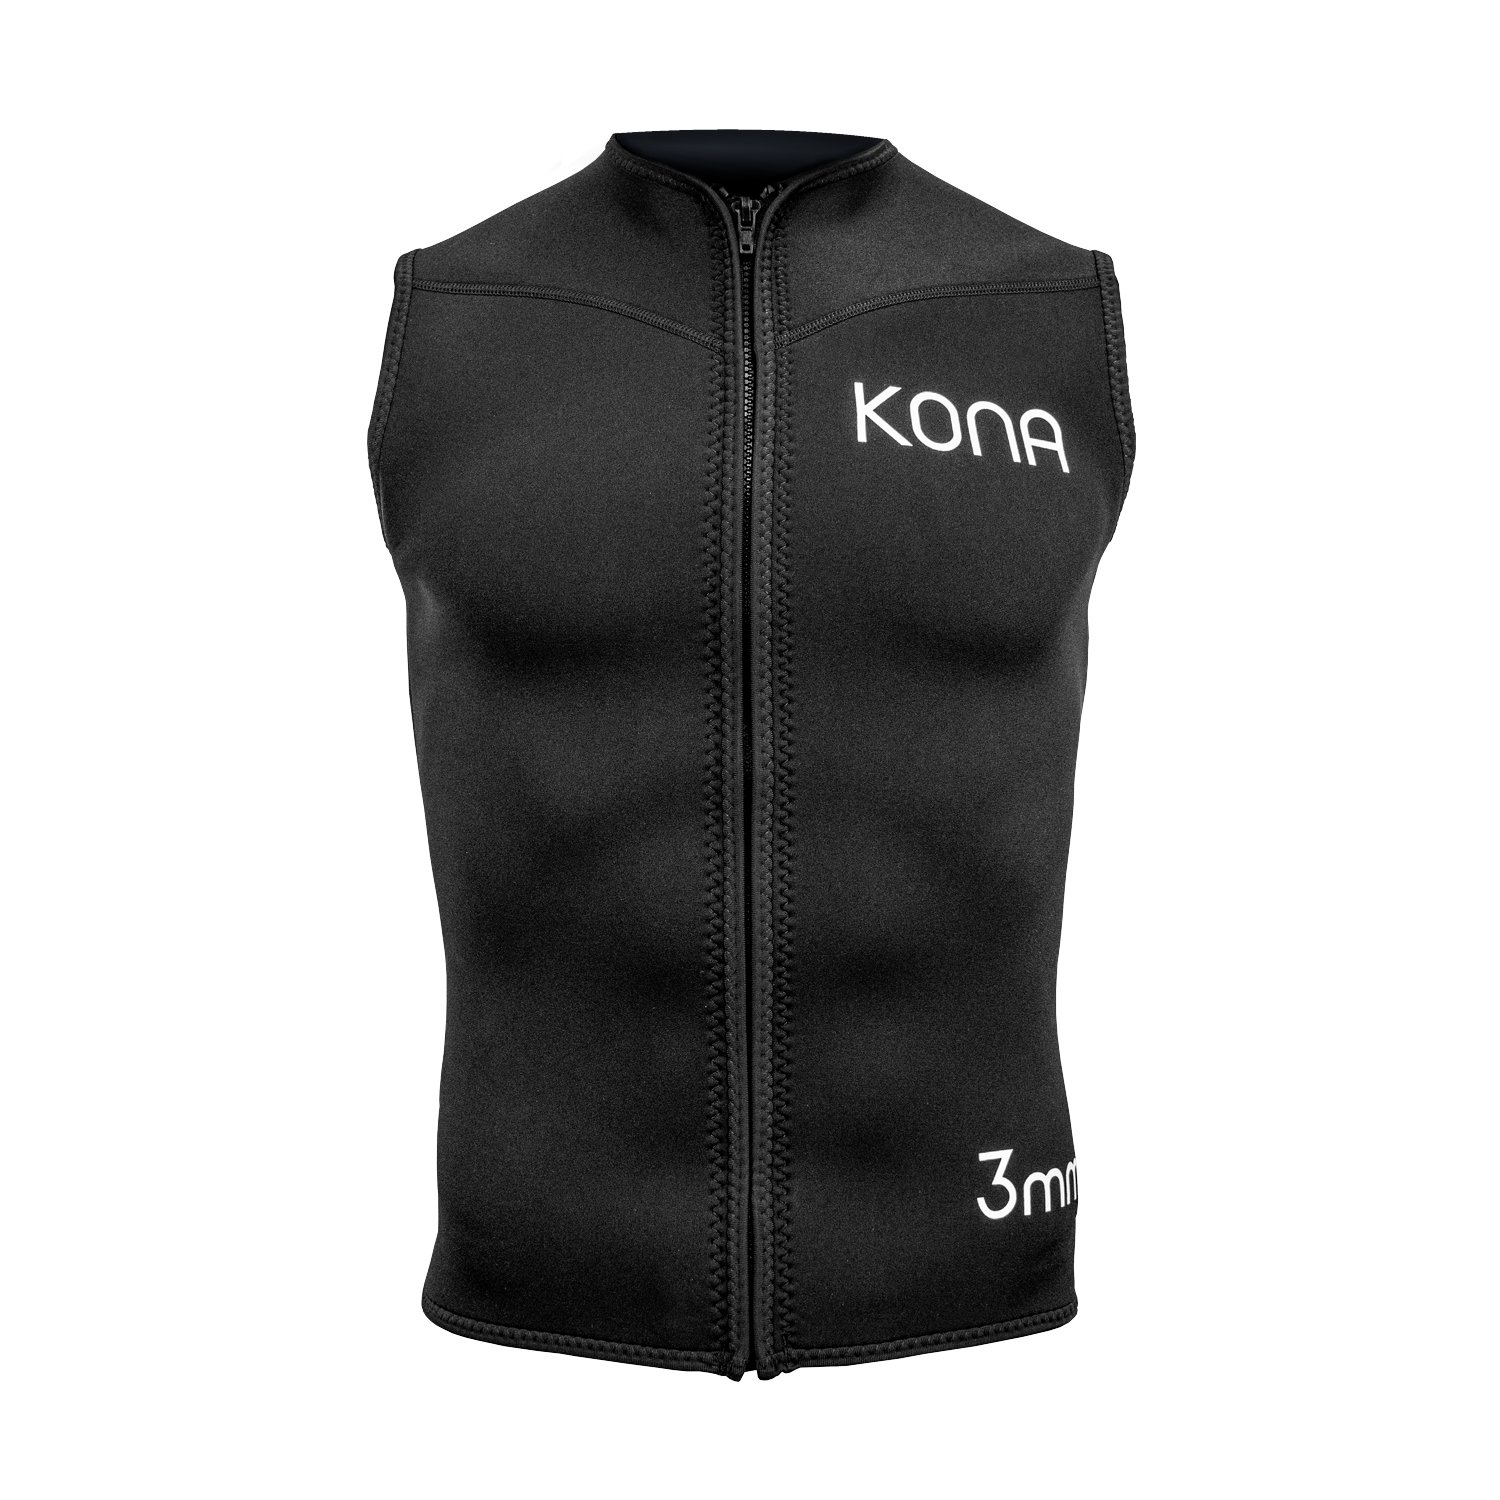 Kona Mens Zipper Diving Vest Wetsuit Top Premium Neoprene 3mm - Black (X-Large) by Kona